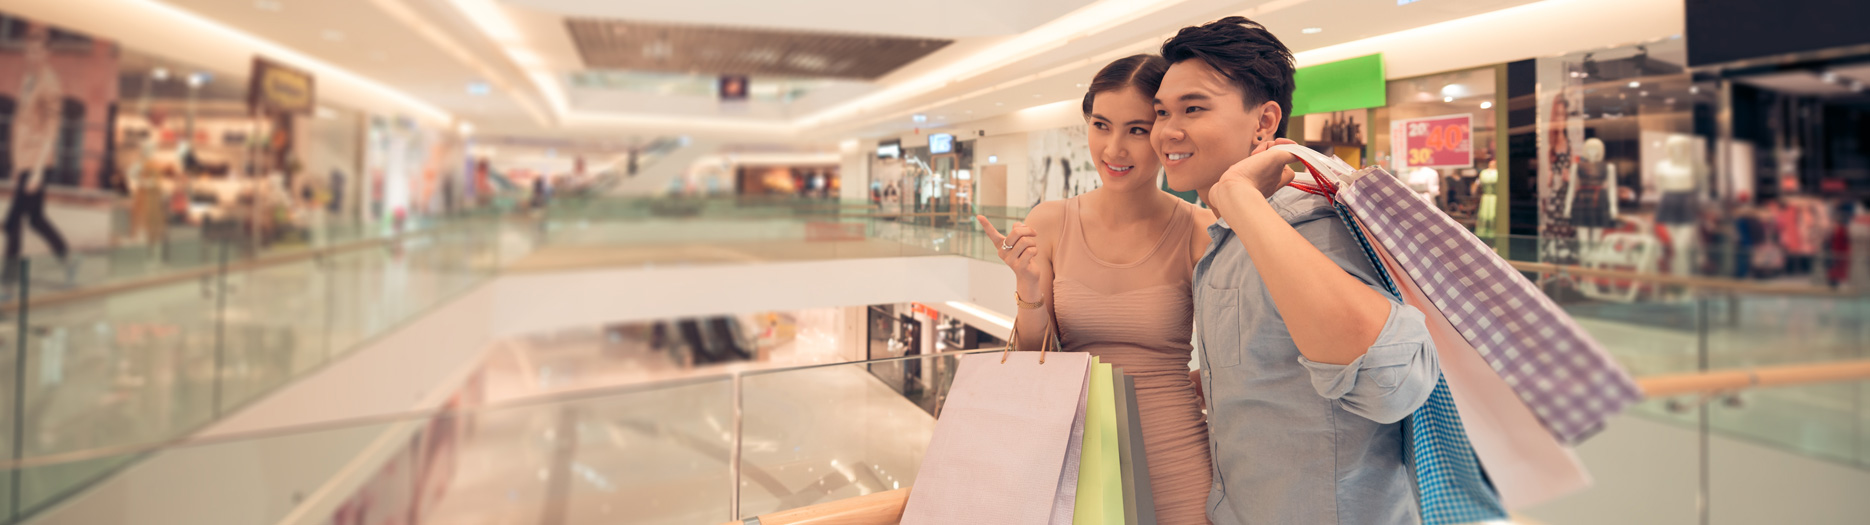 Shopping-and-Lifestyle-Banner